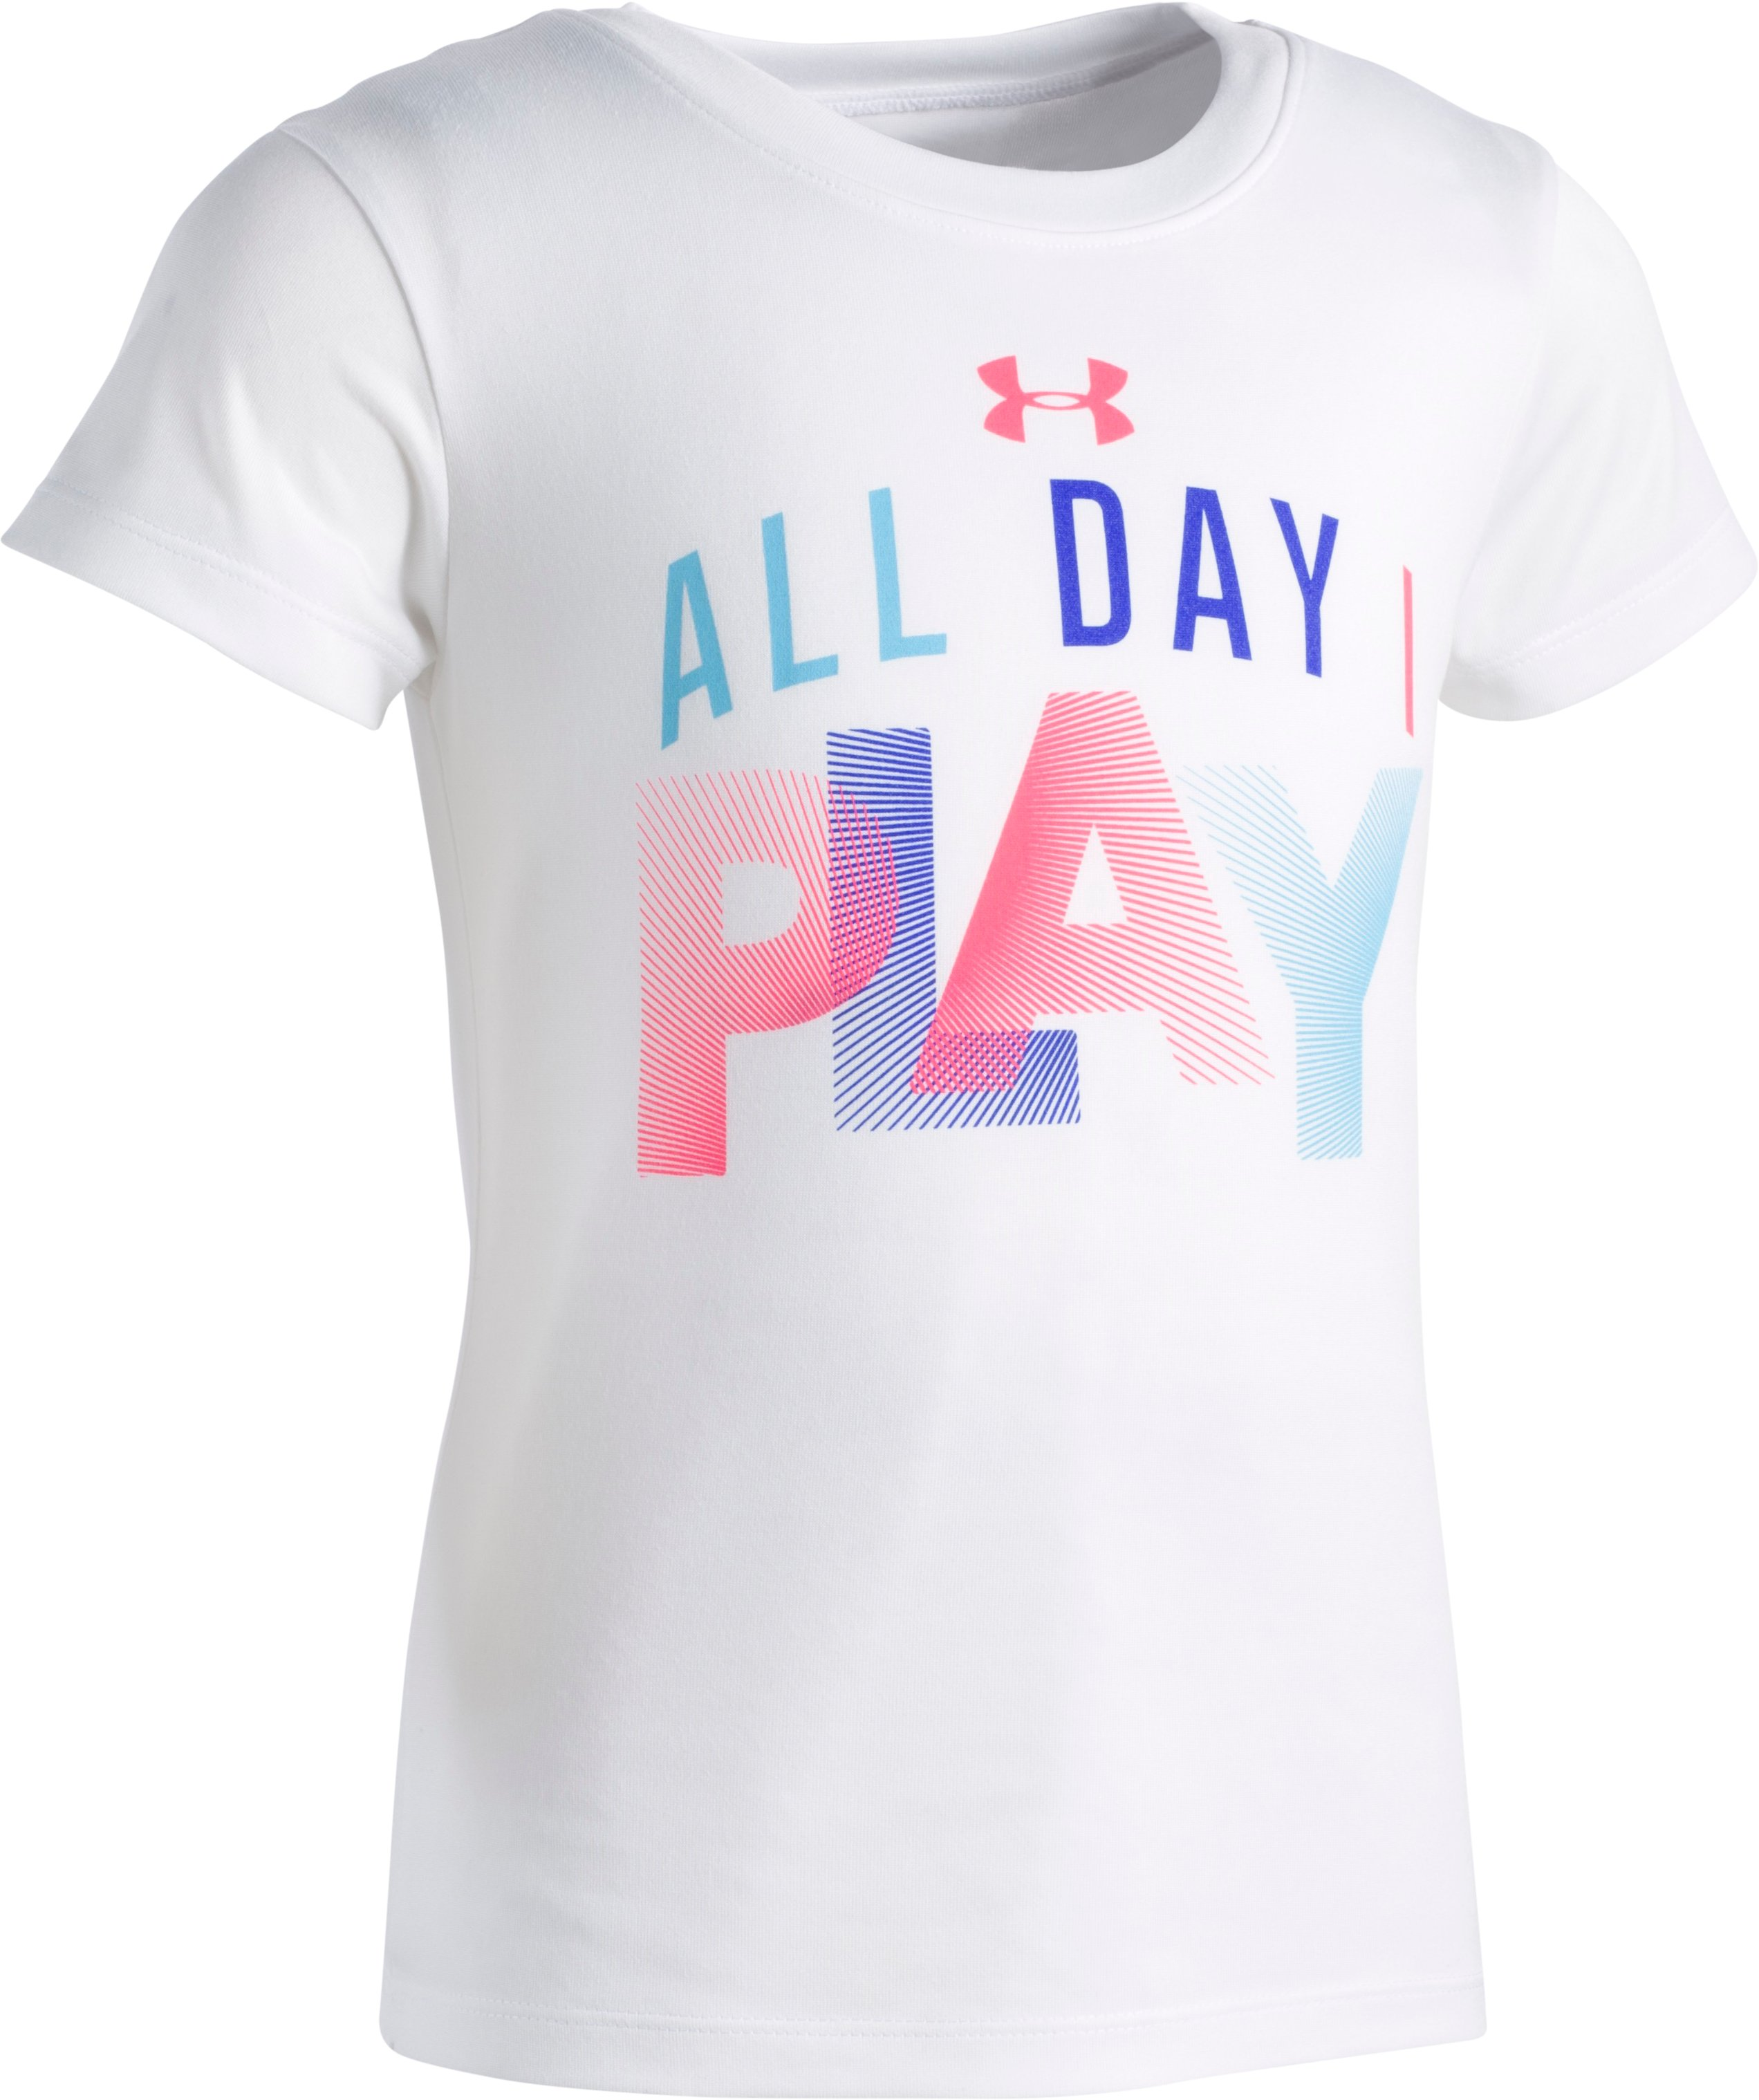 Girls' Pre-School UA All Day I Play Short Sleeve, White